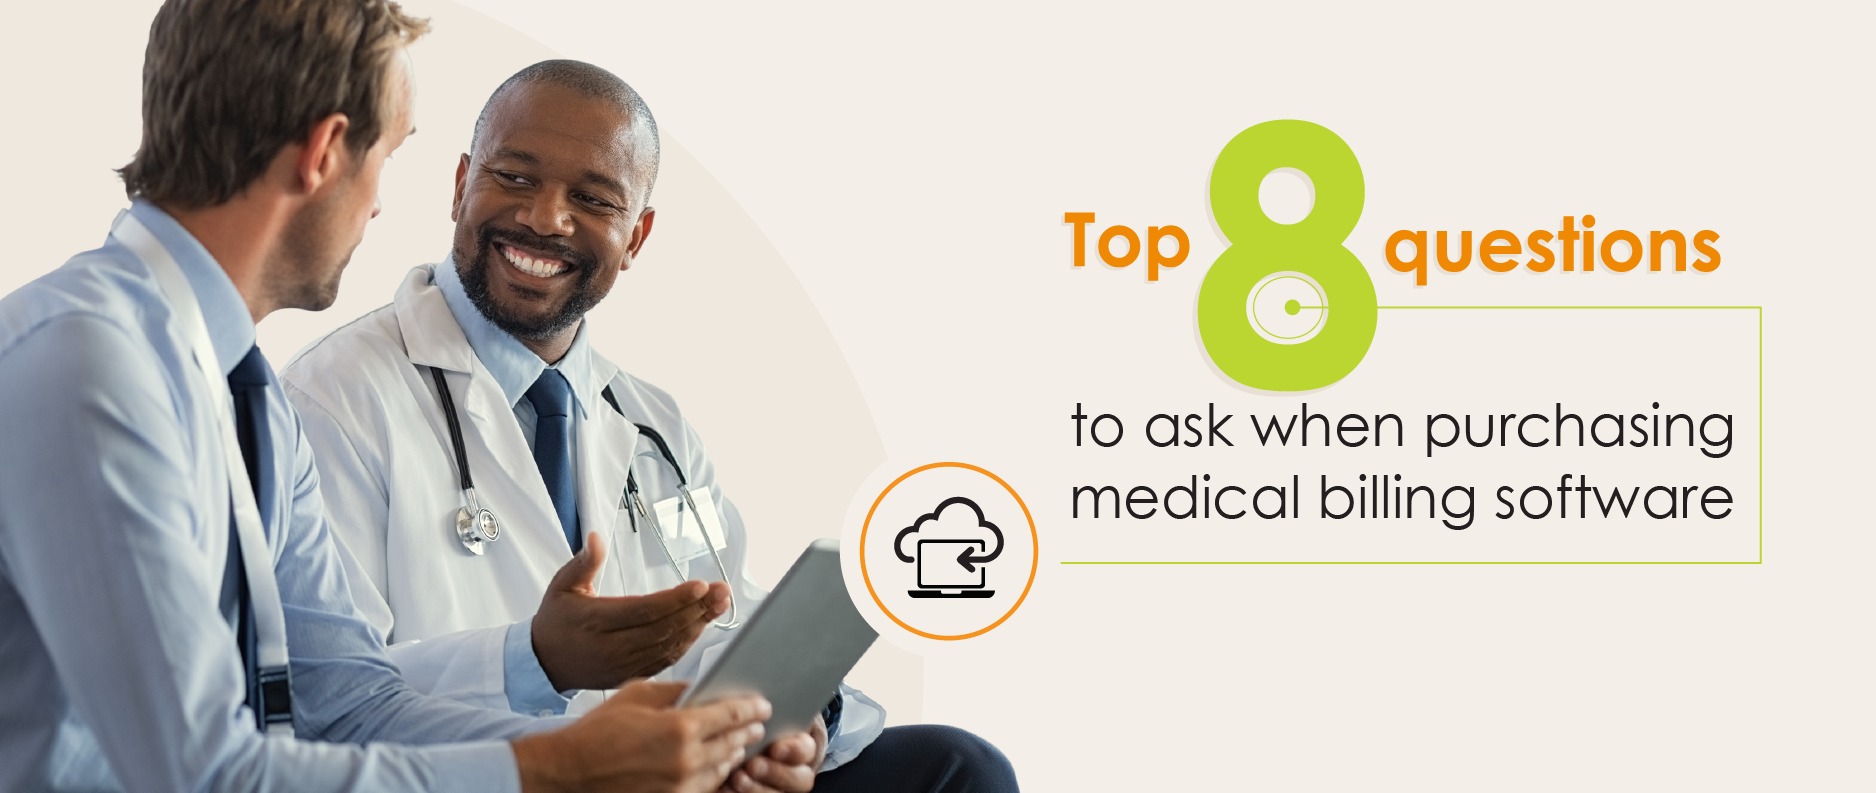 Top 8 questions to ask when purchasing cloud-based medical billing software